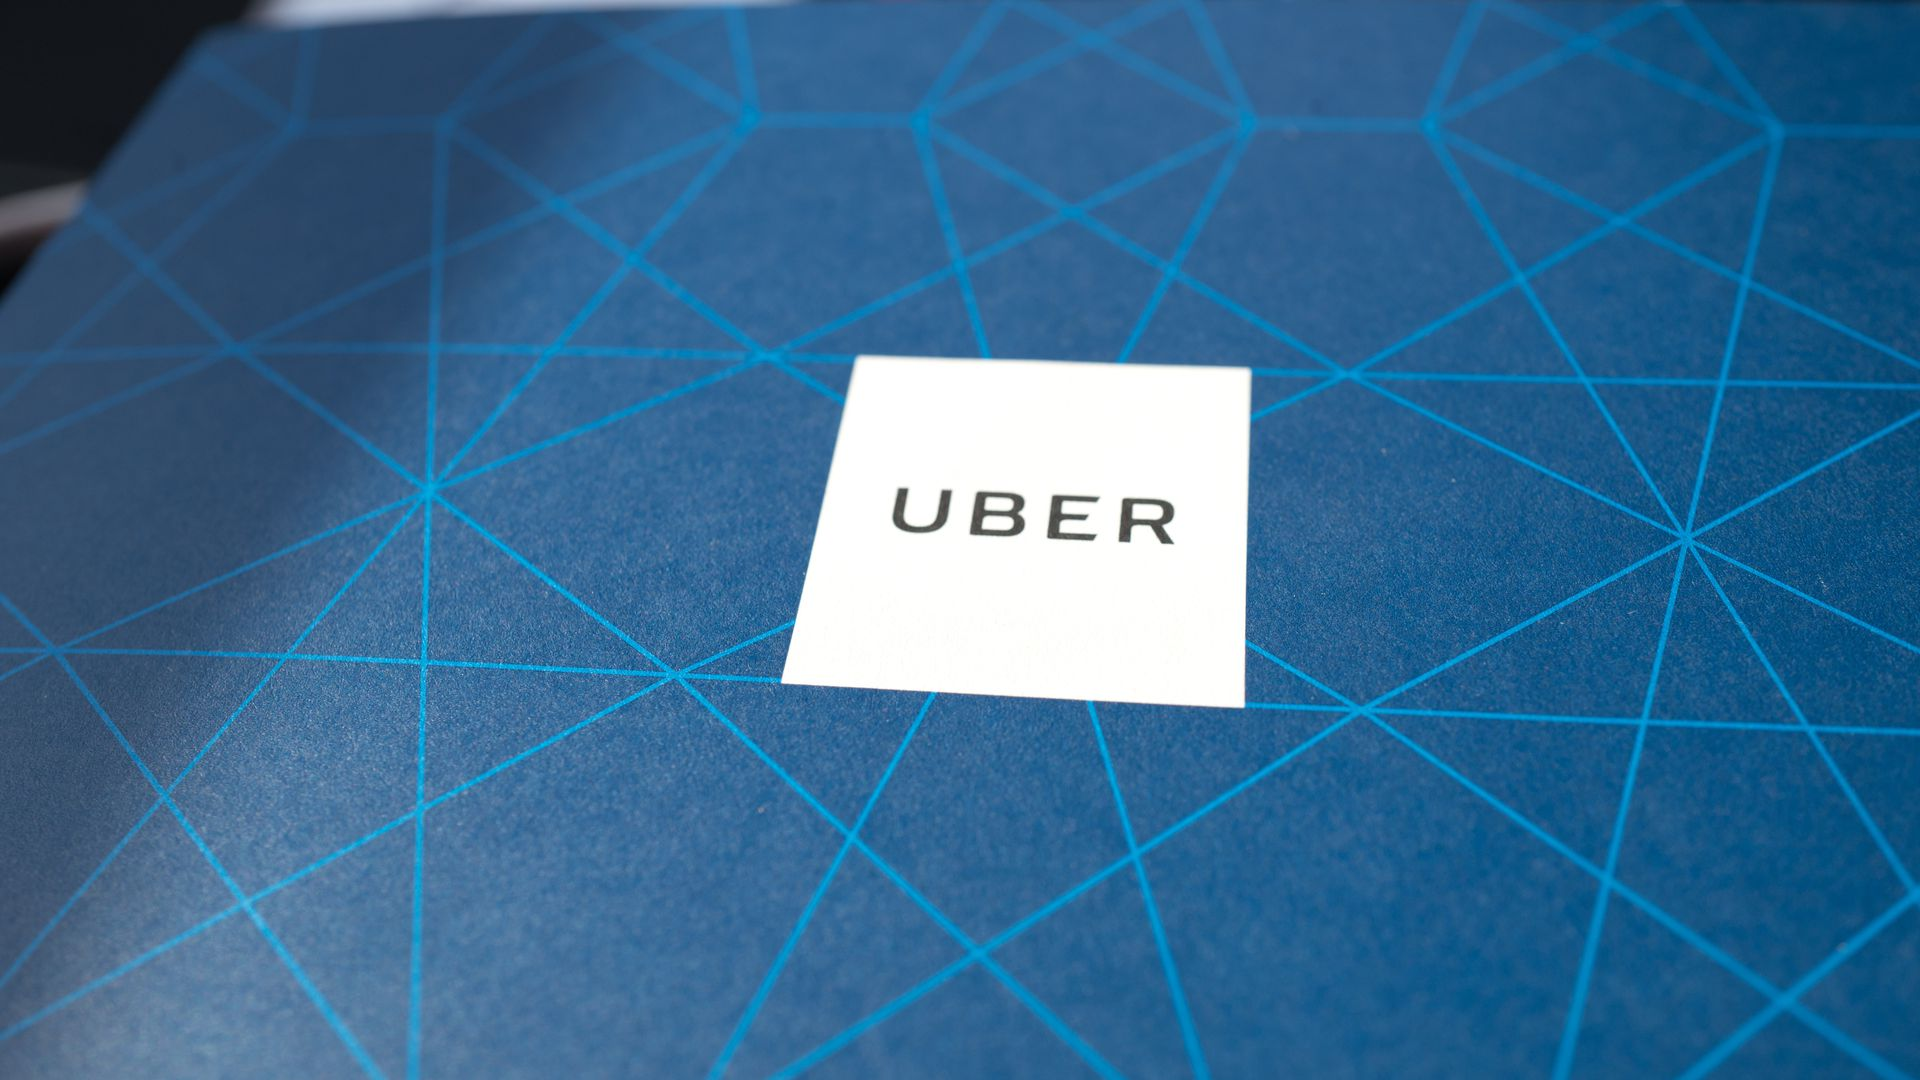 Uber Reportedly Valued At 120 Billion In Ipo Proposals Axios